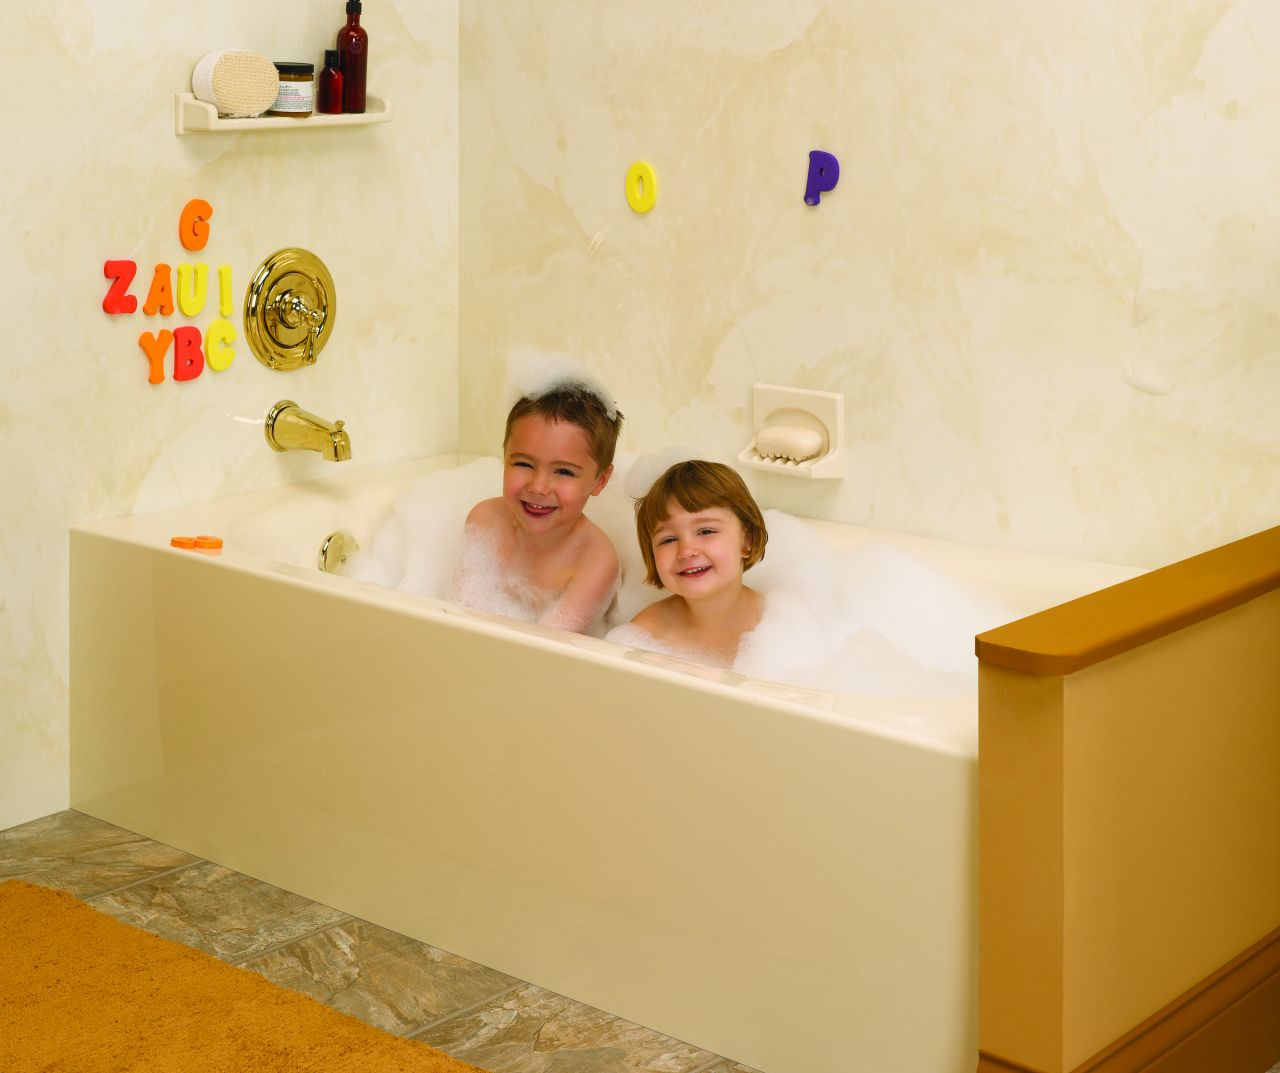 Bathtub shower alcove remodeling ideas cleveland akron for Tub liner cost